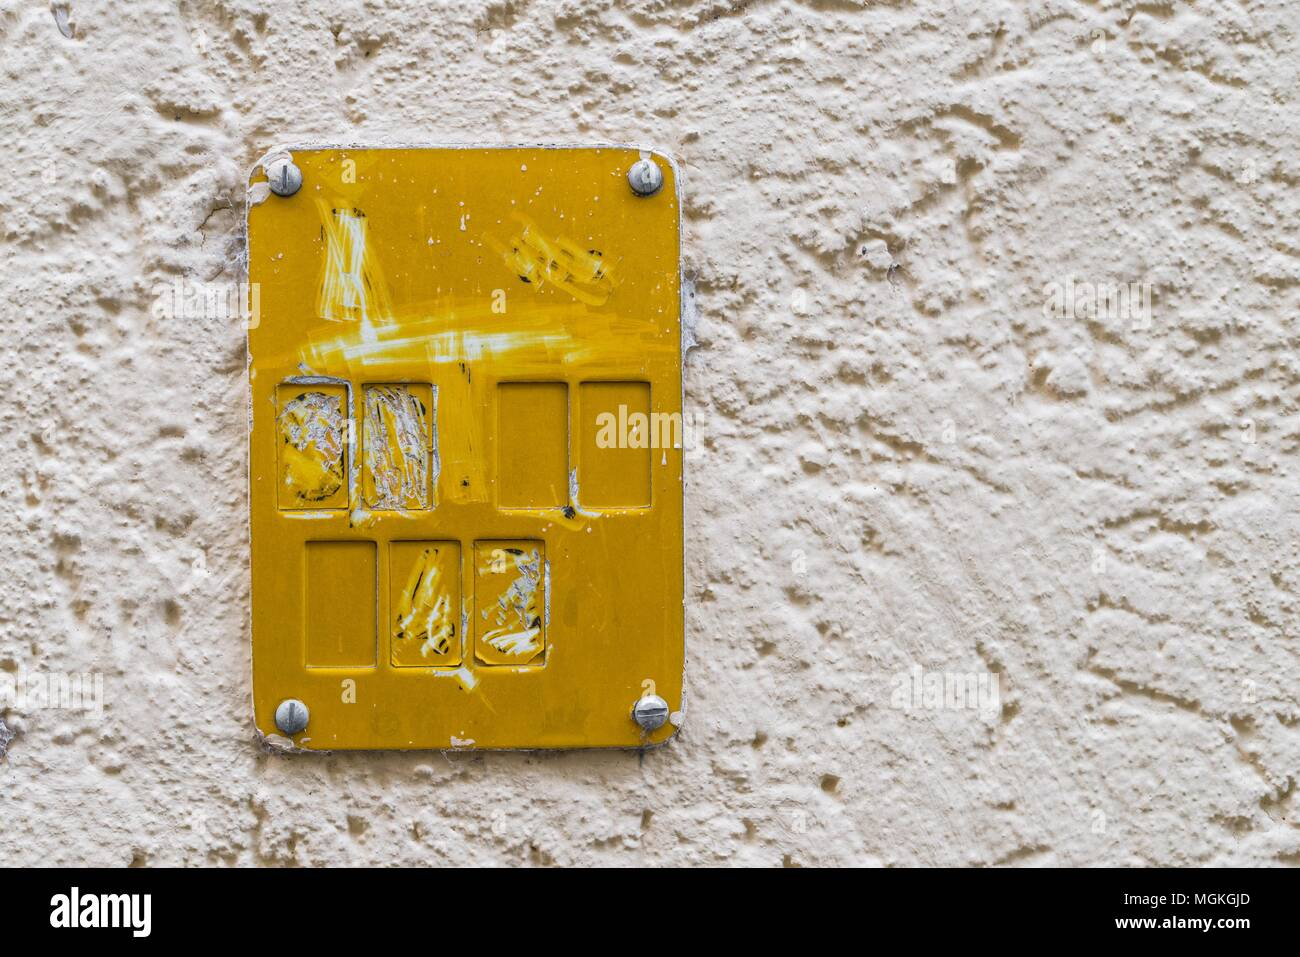 Yellow plastic sign for road fixtures of gas supply systems - Stock Image